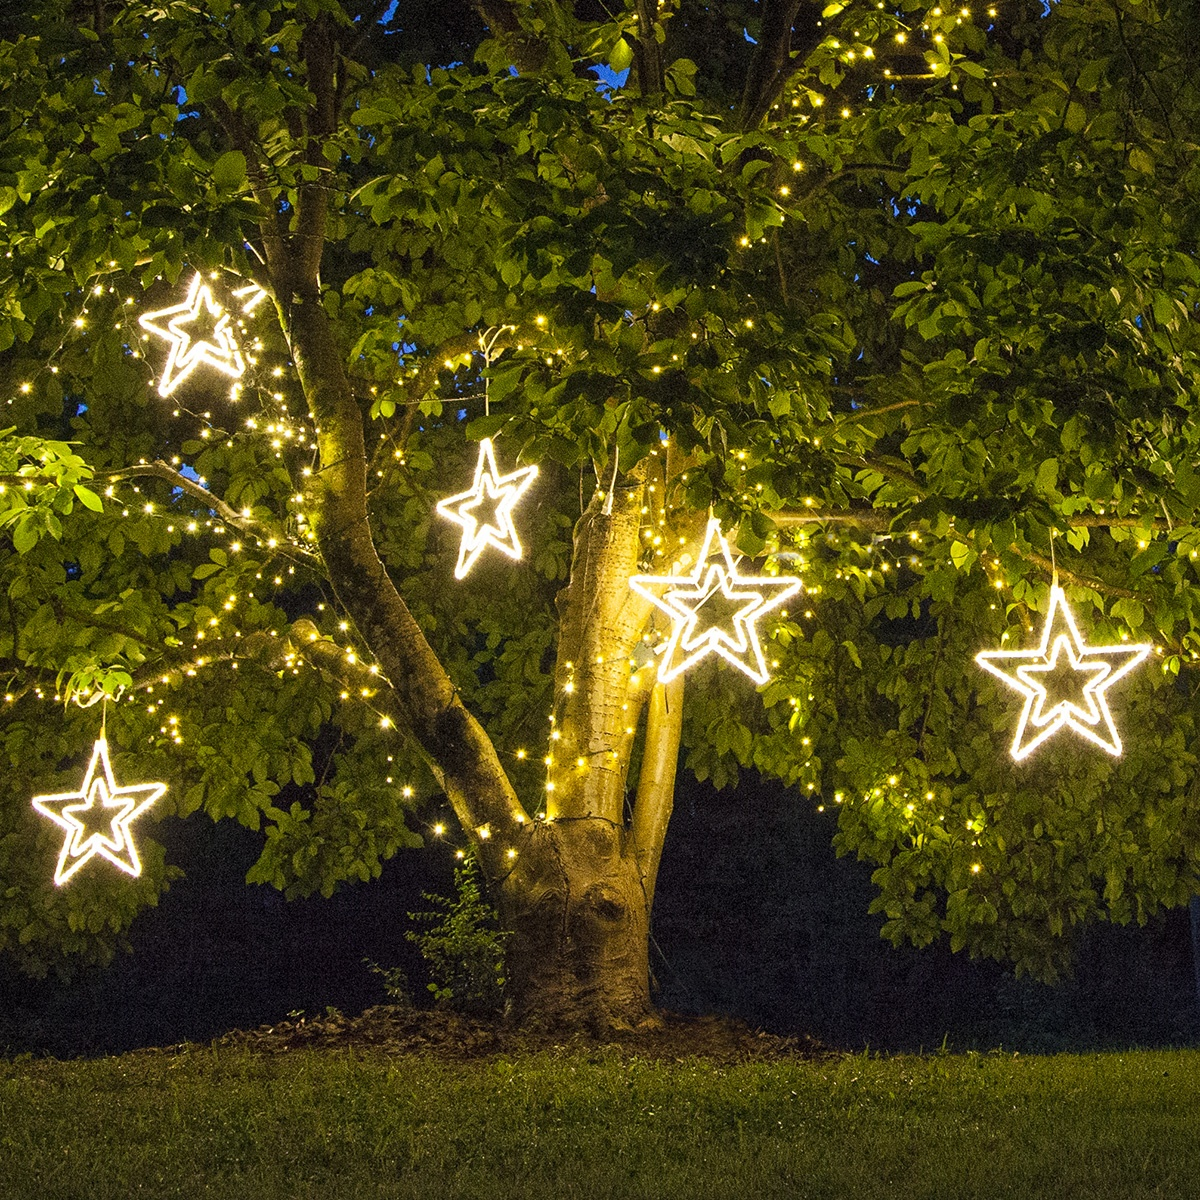 Christmas Stars Hanging from Tree Branches